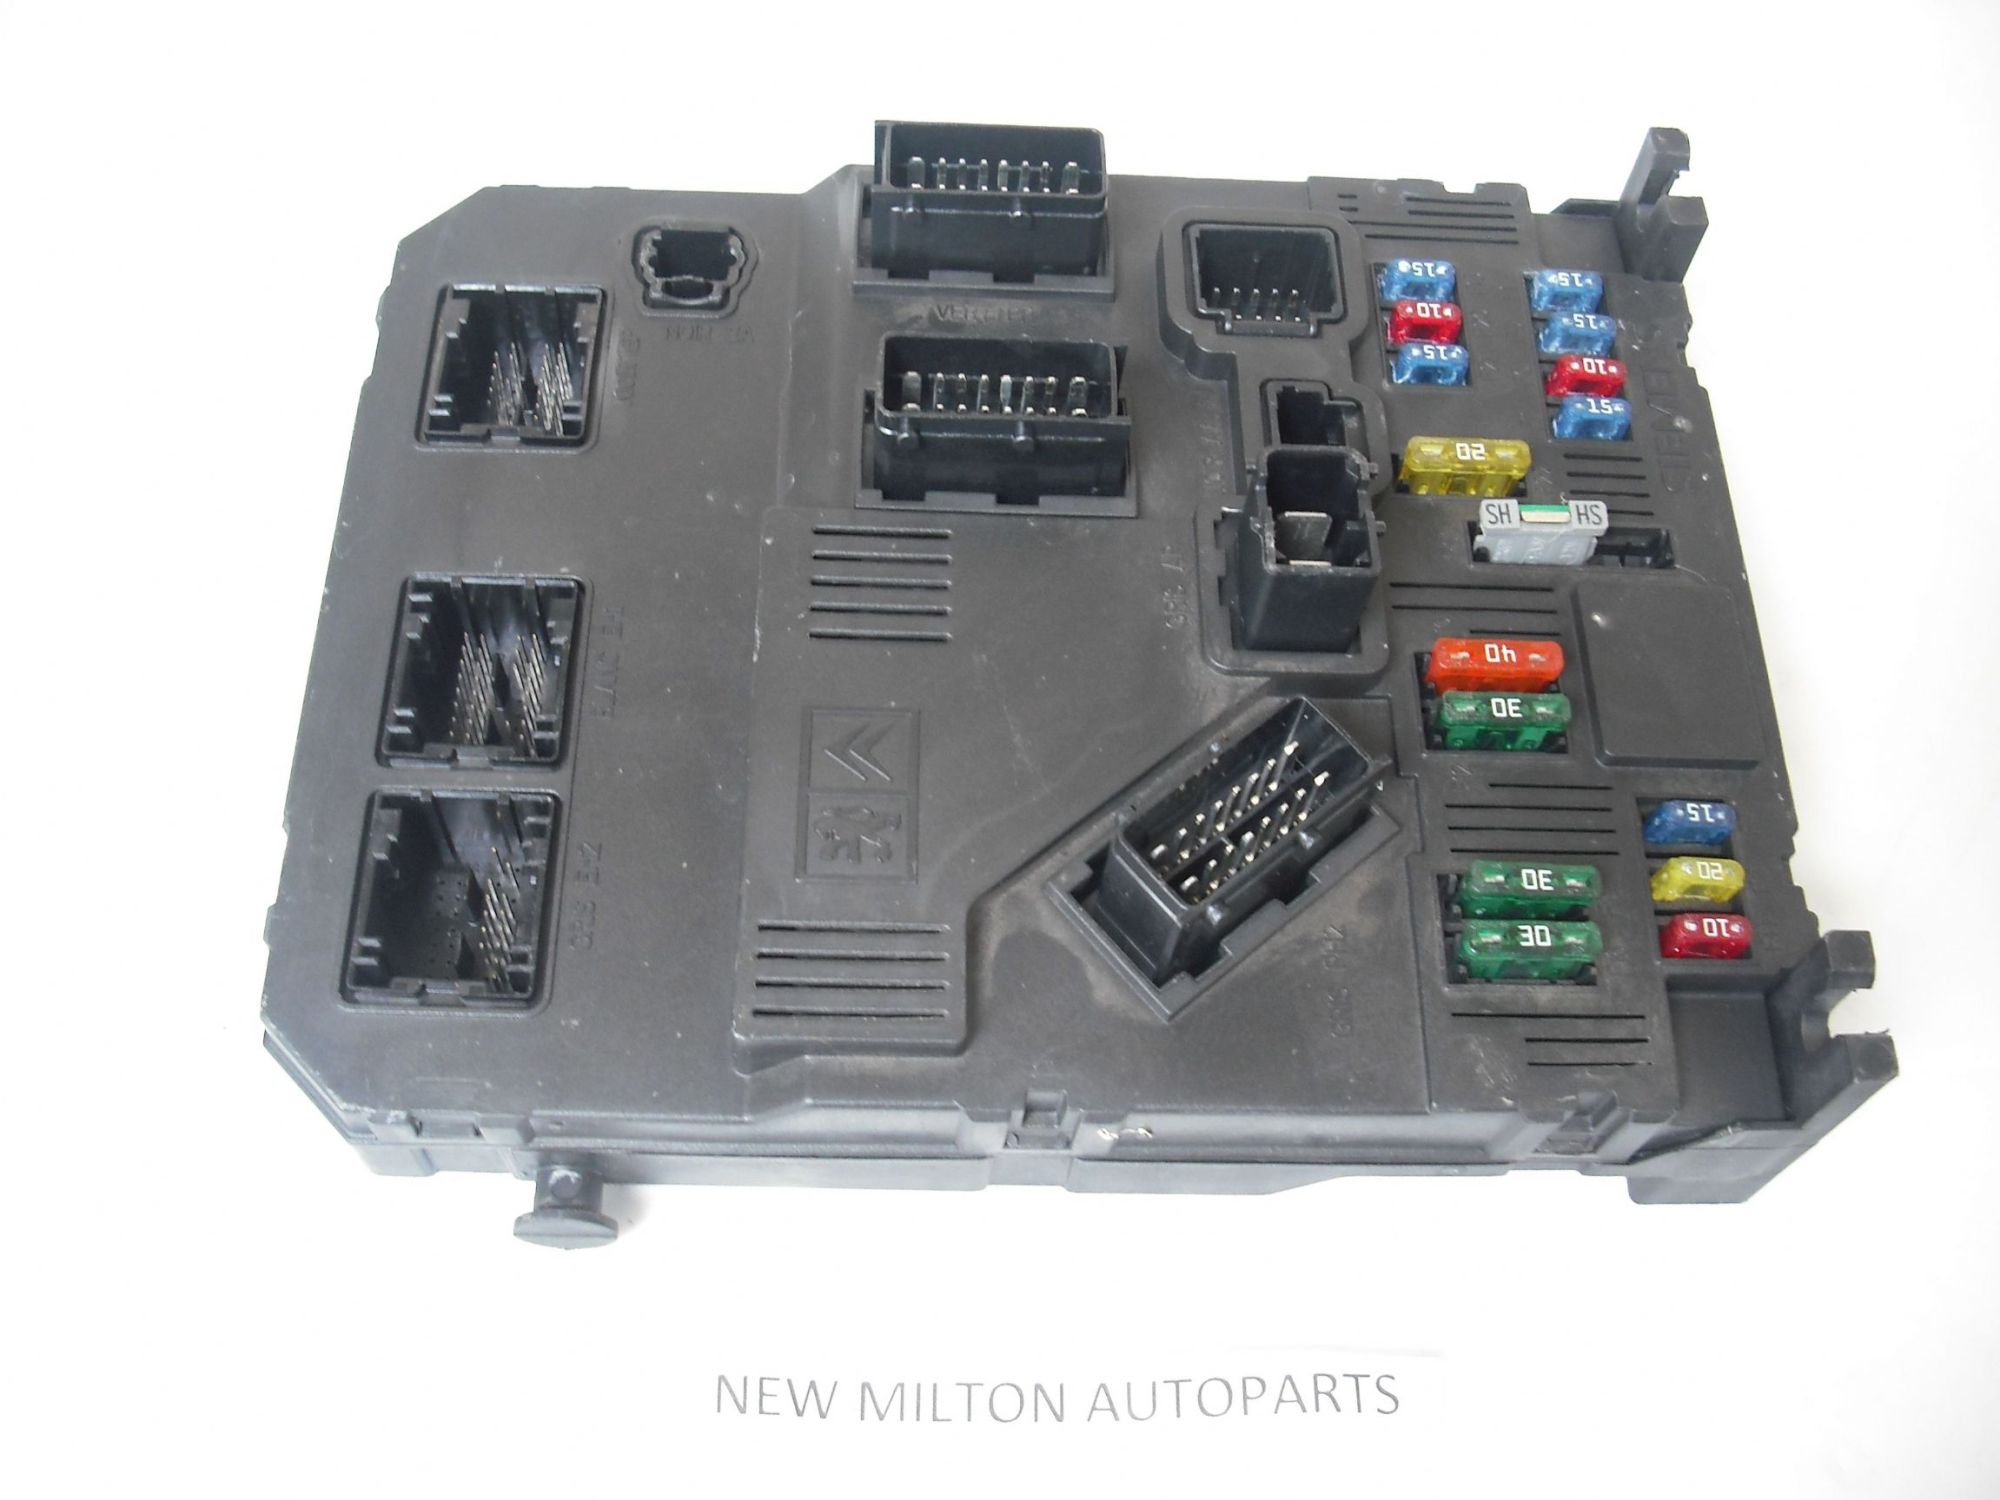 hight resolution of peugeot partner combi fuse box comfort controller bsi e01 00 rh 2cb6df 39 ekmpowershop net peugeot partner van 2013 peugeot partner van fuse box layout